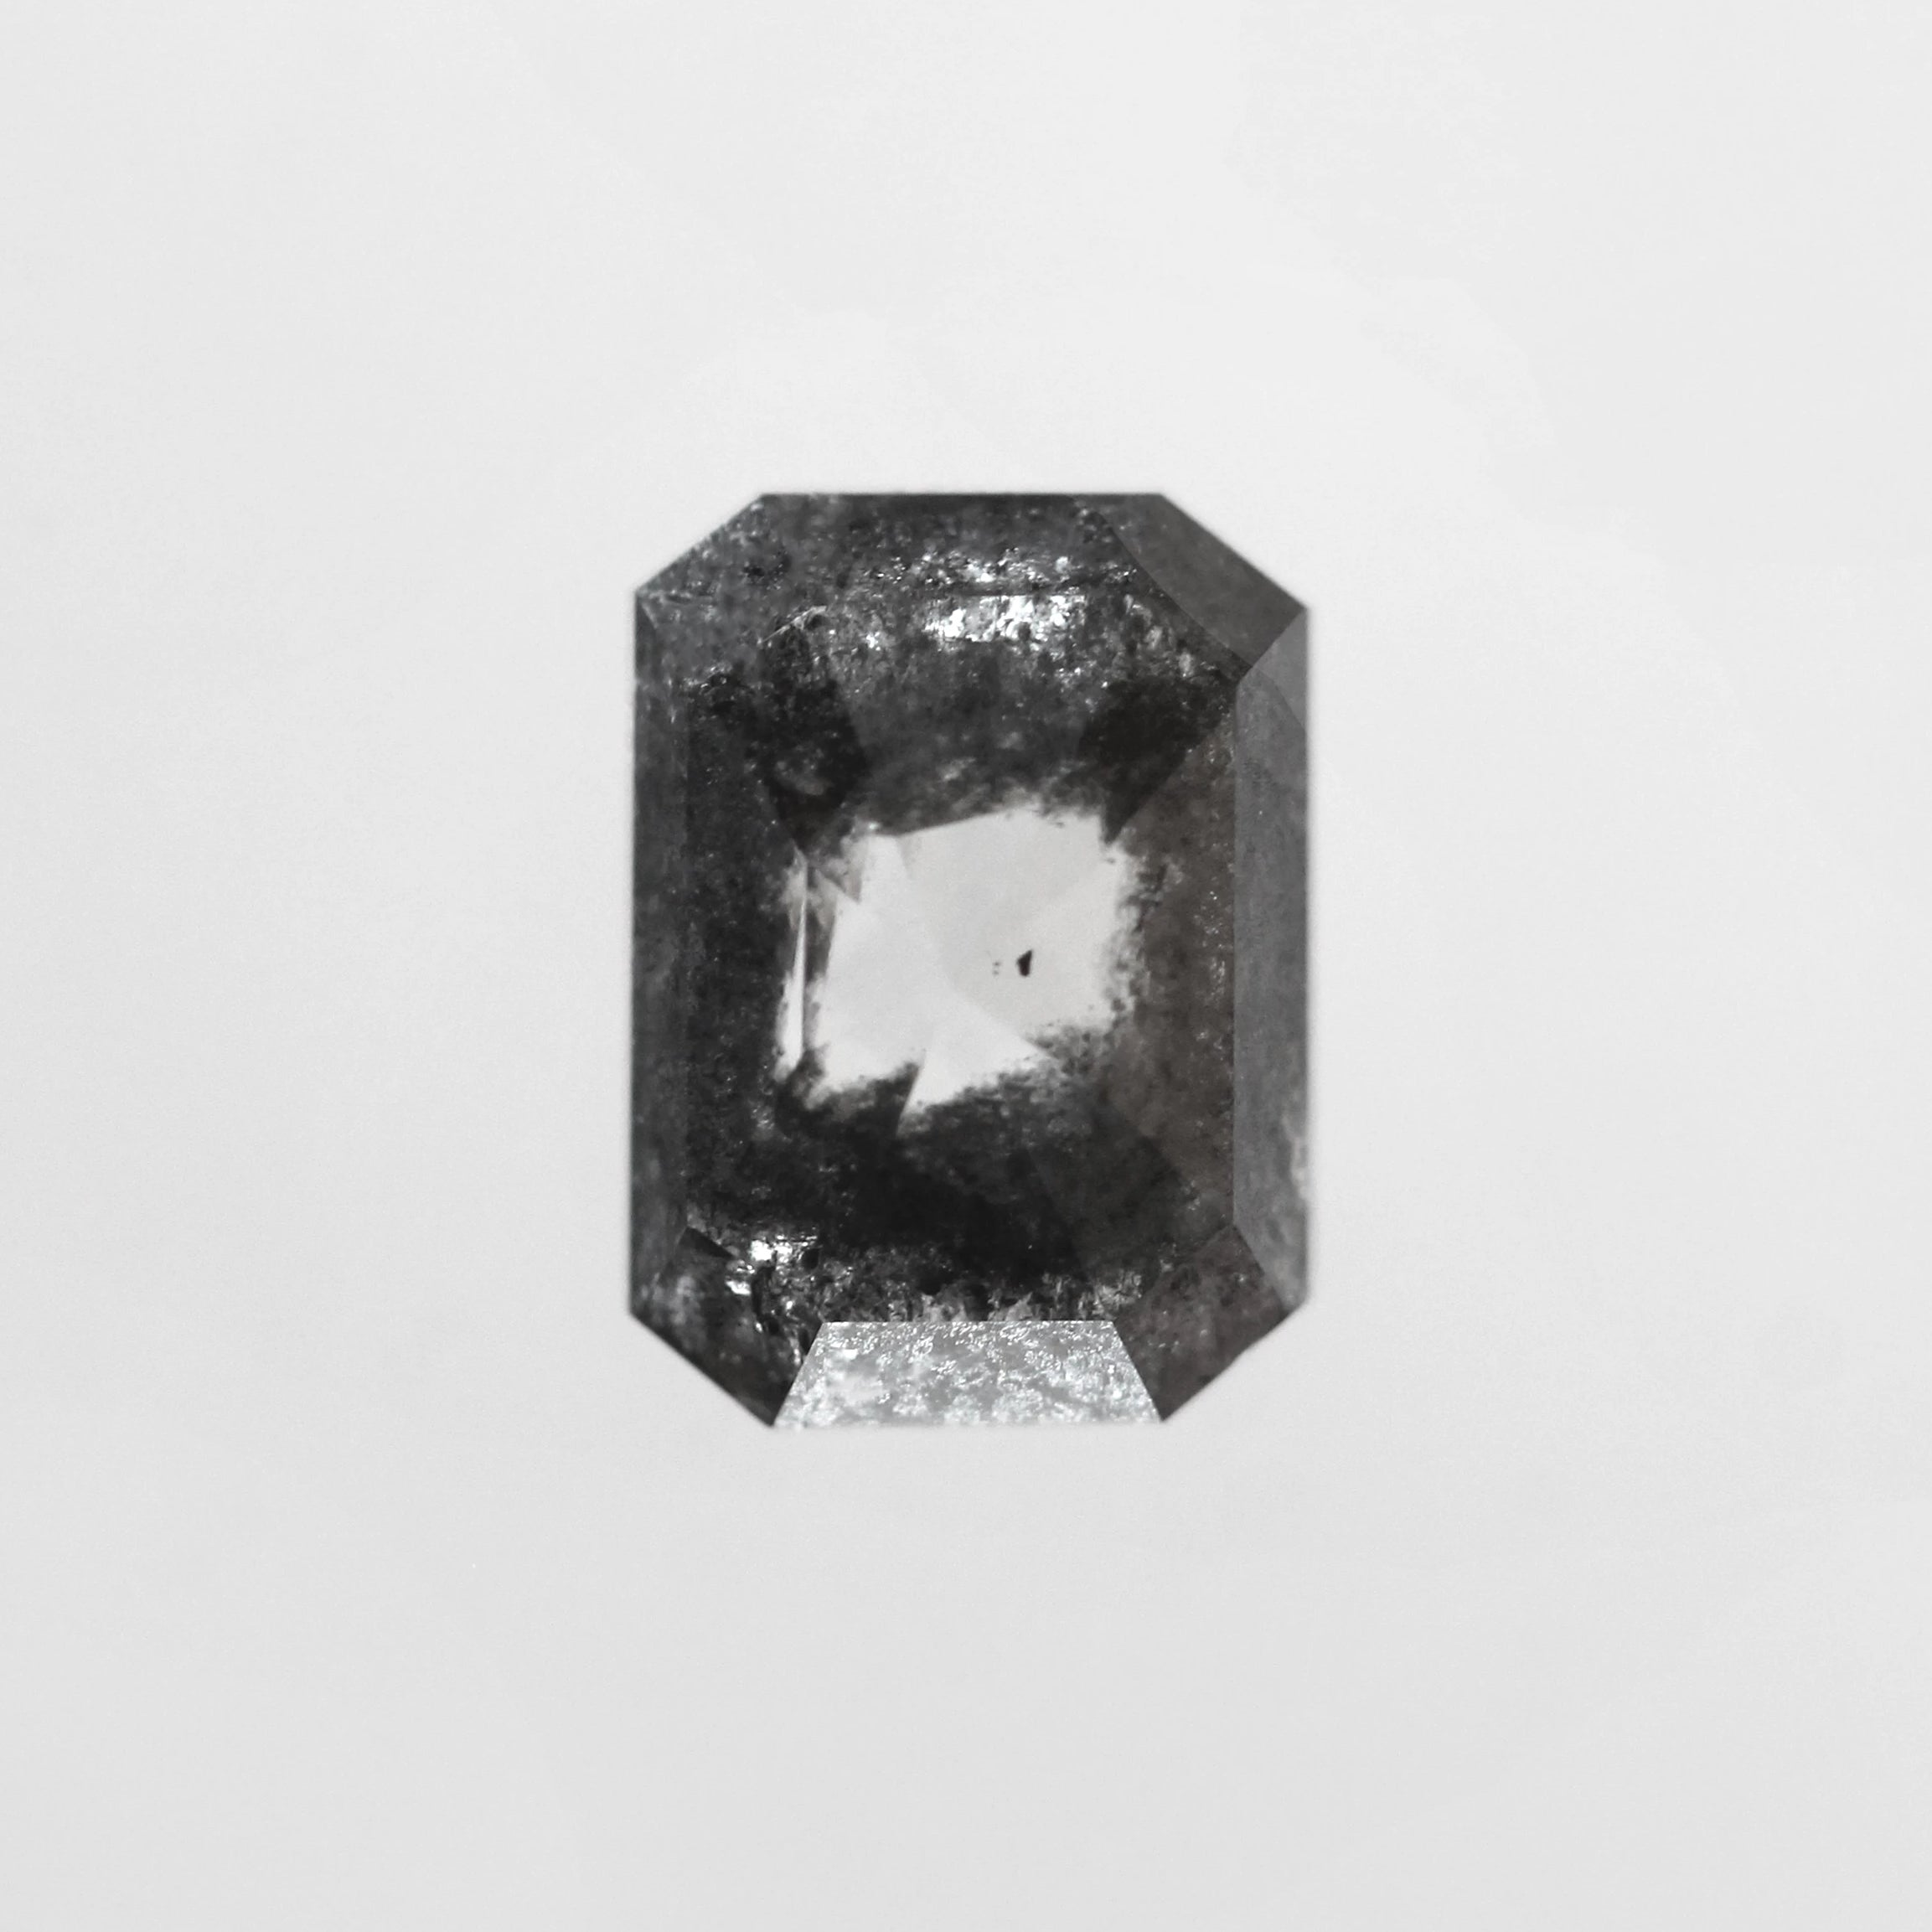 1.33ct Emerald Cut Celestial Diamond® for Custom Work - Inventory Code EB133 - Celestial Diamonds ® by Midwinter Co.